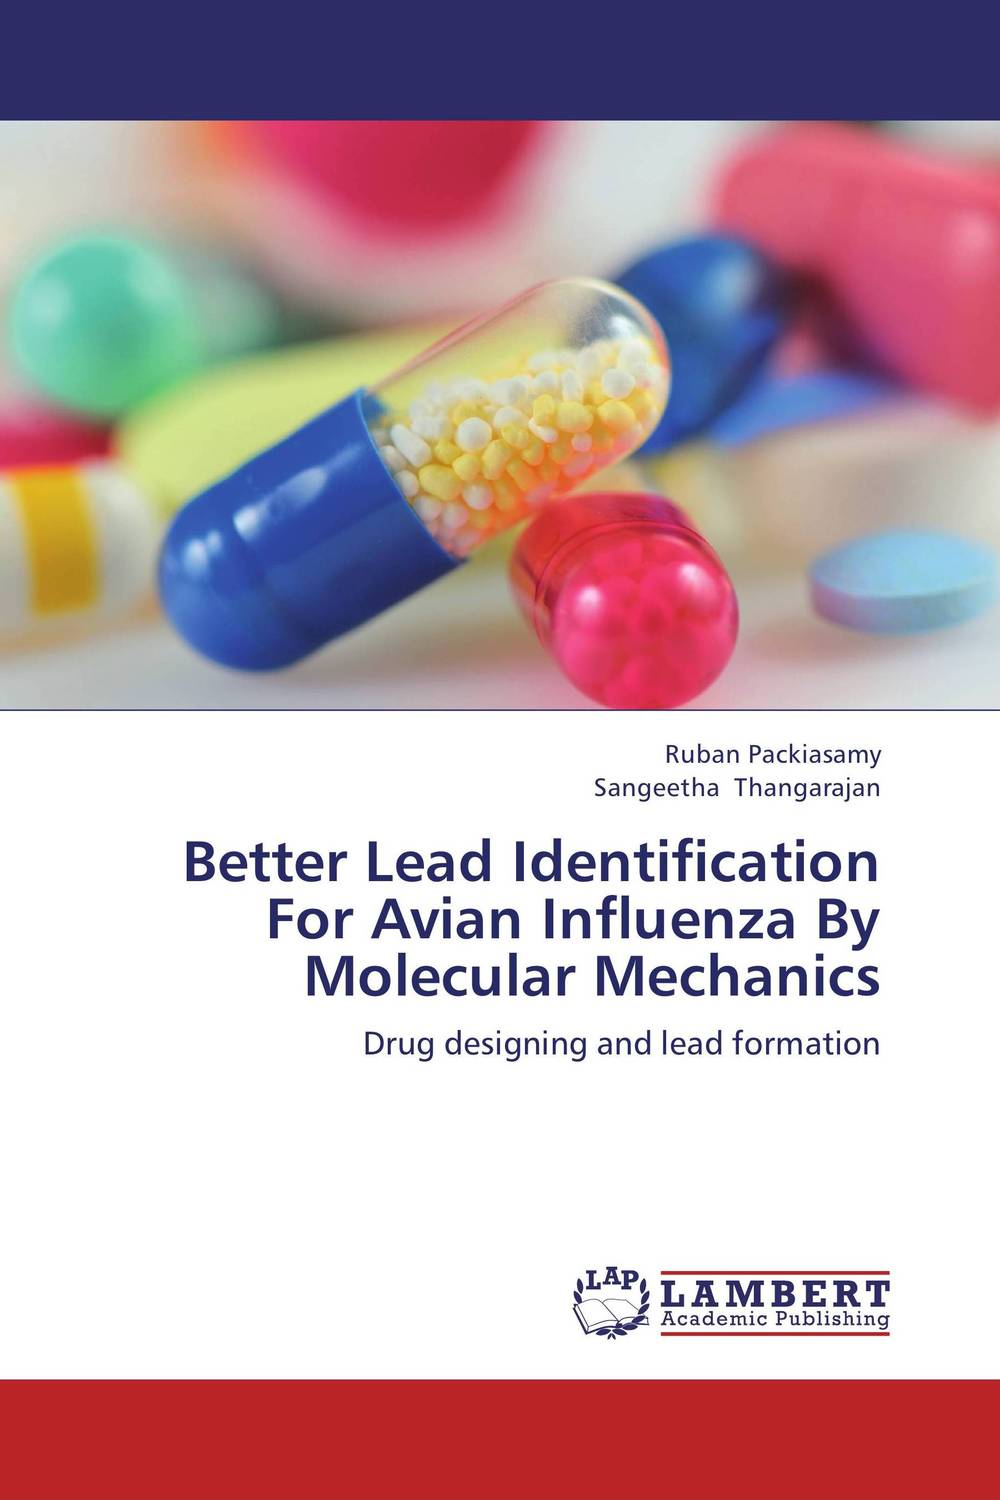 Better Lead Identification For Avian Influenza By Molecular Mechanics md yousuf ansari ganesh chandra sahoo and pradeep das structure identification inhibitors designing against hgprtase